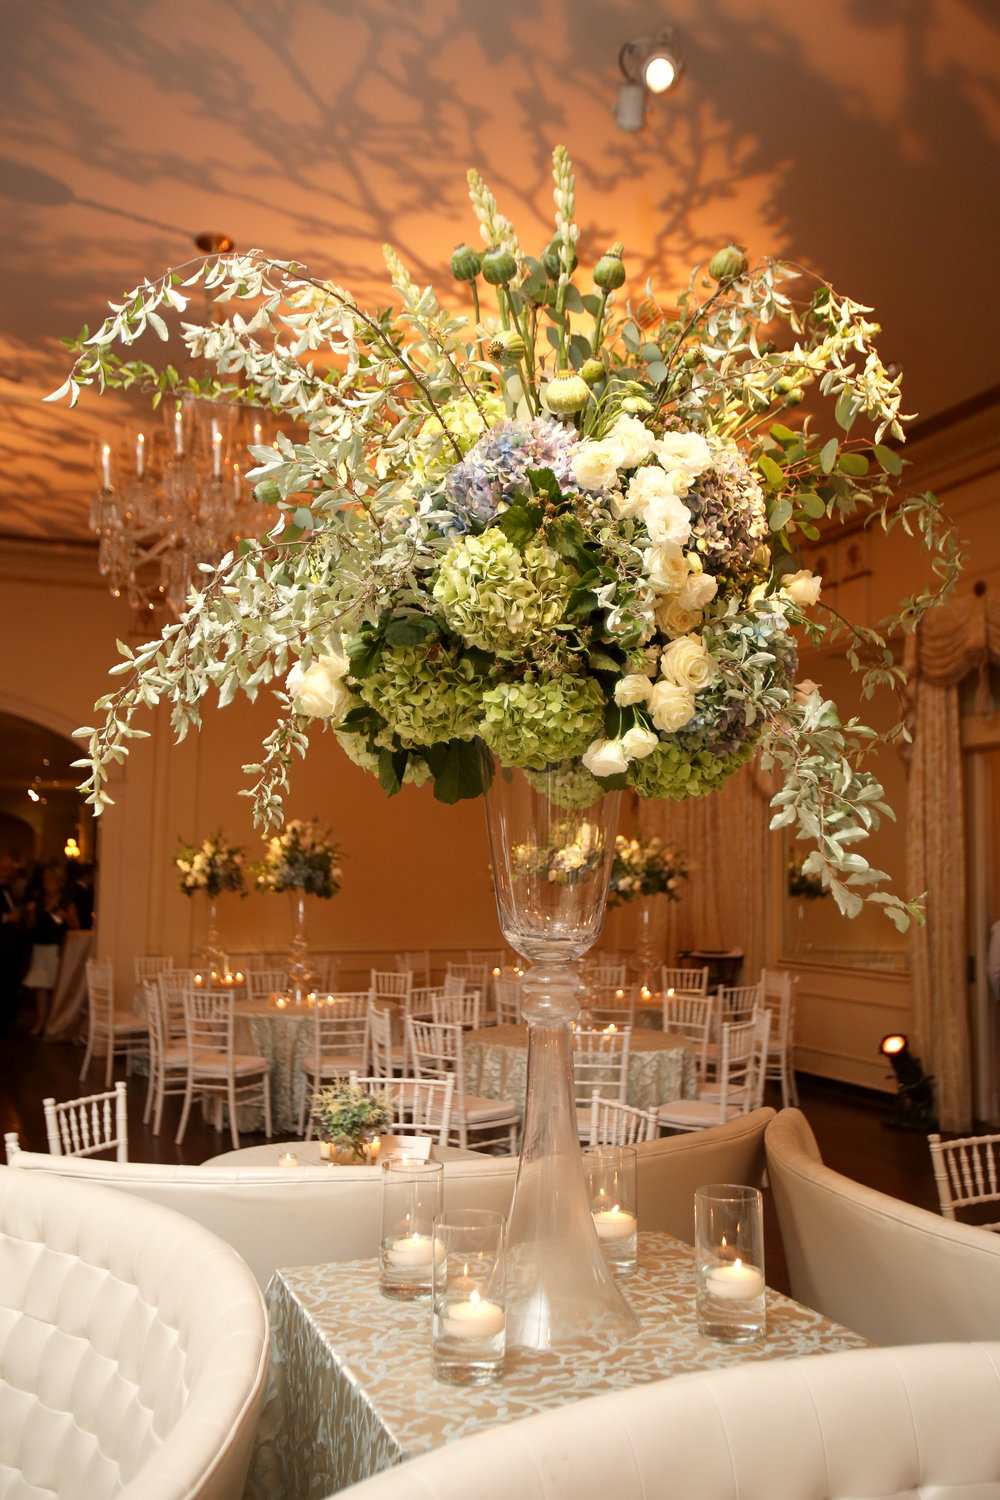 Belle Meade Country Club Wedding: The Johnsons | Big Events Wedding ...